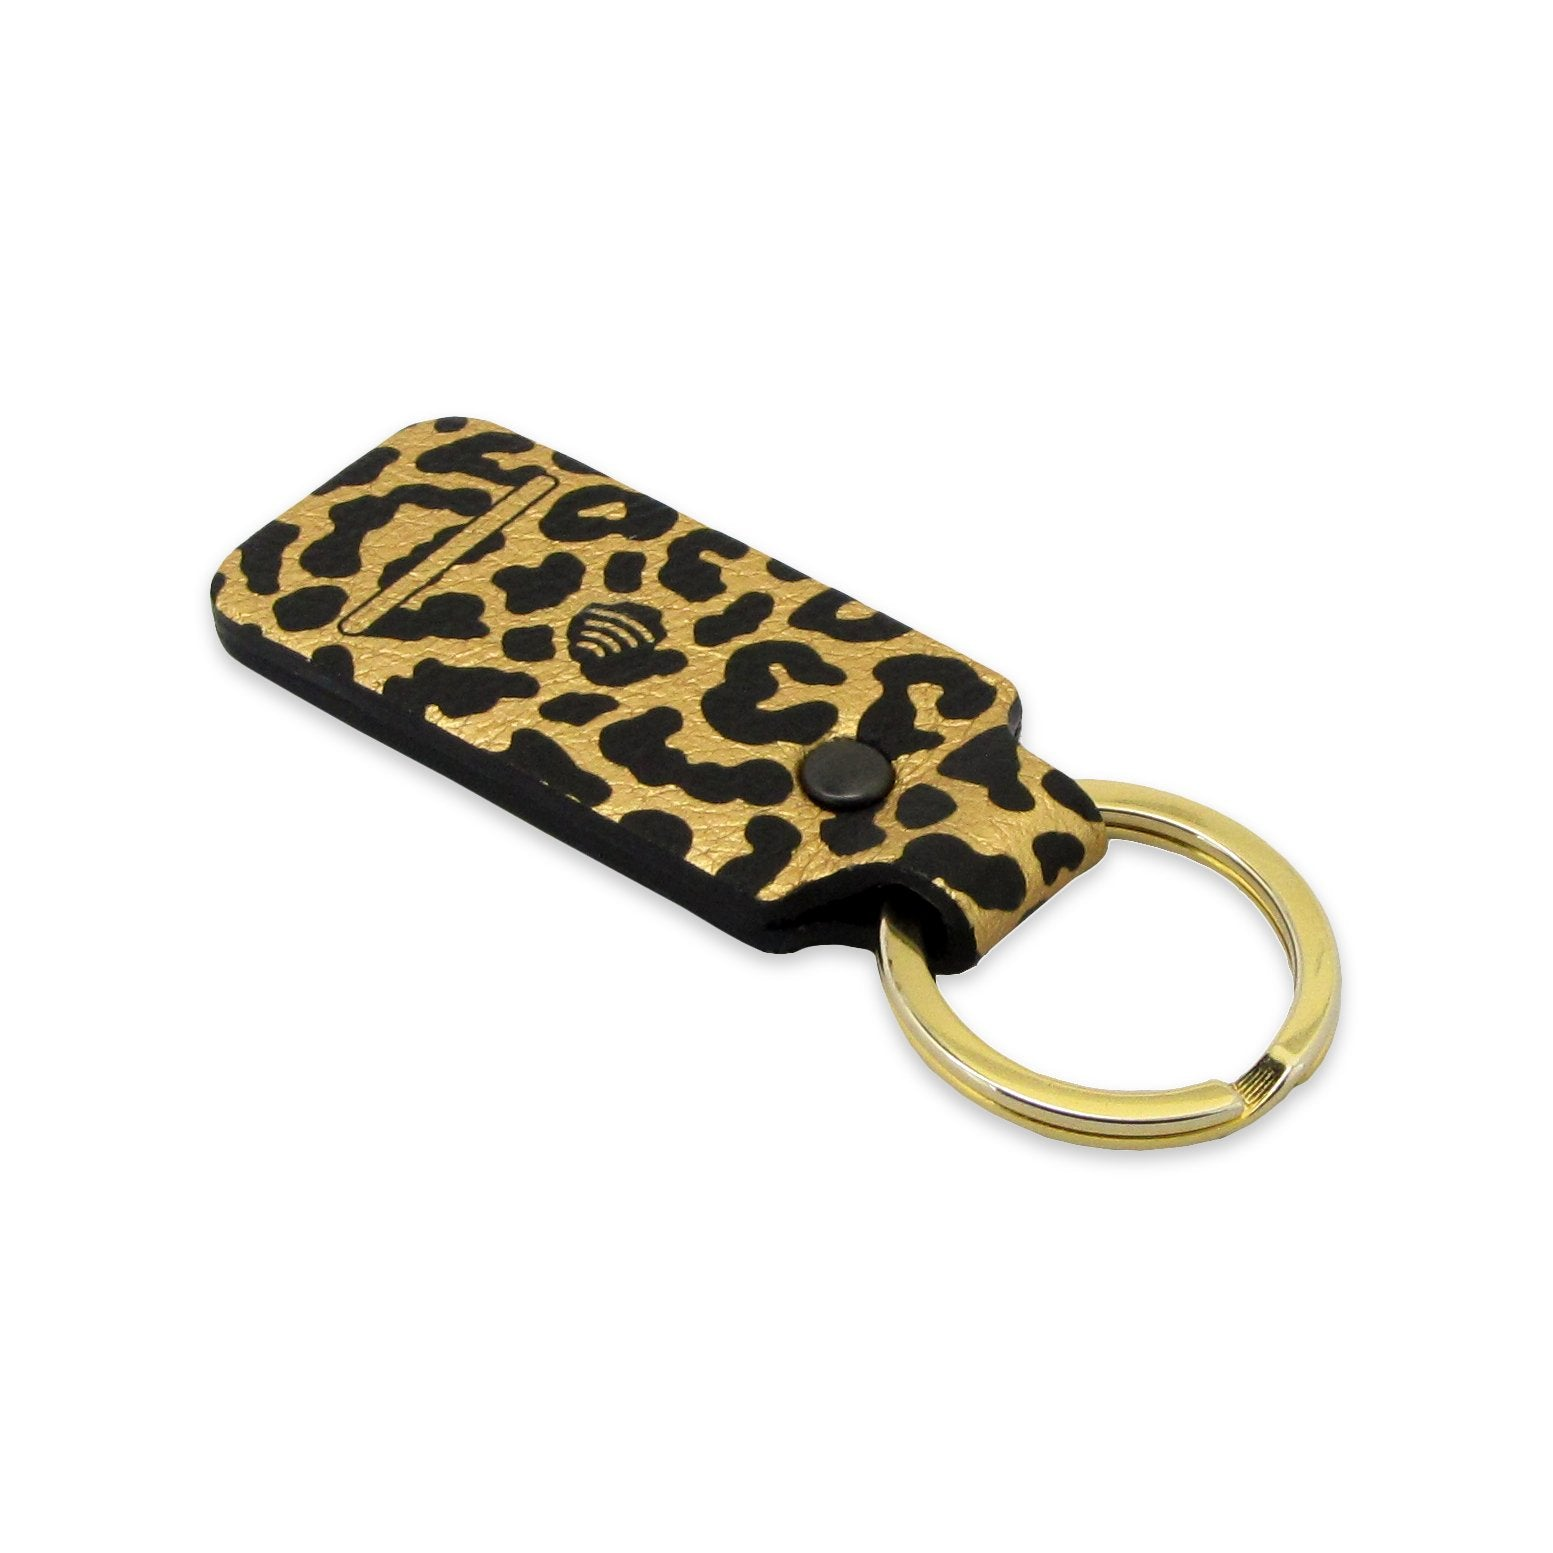 Black and Gold leopard printed gadget for women by Tovi Sorga - Leather gifts made in the UK with new easy contactless payment using the Pingit App